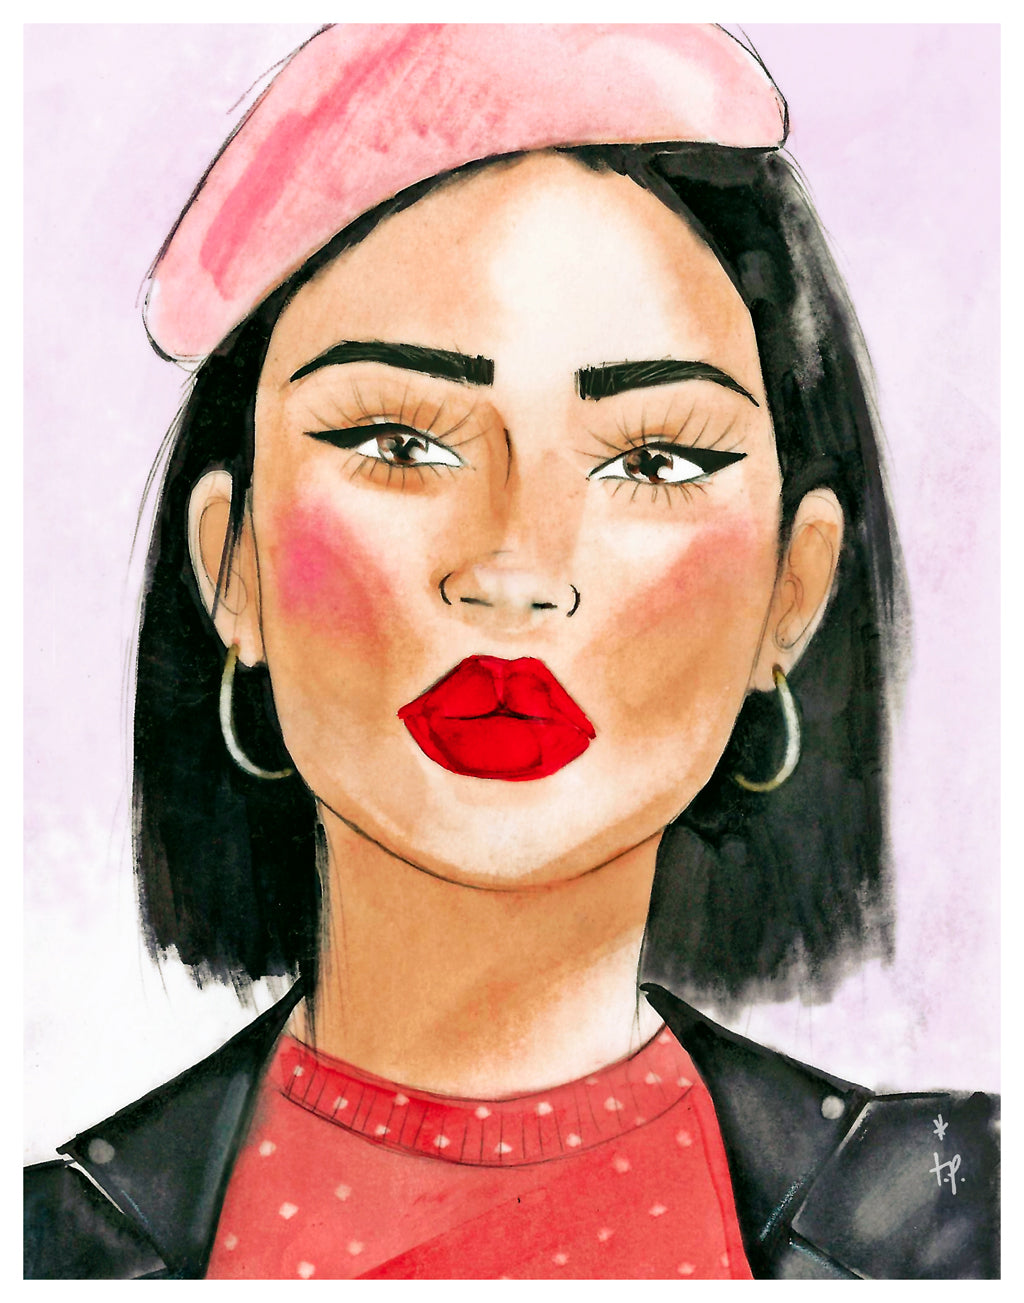 Illustration of girl wearing a pink beret and leather jacket by Tatiana Poblah